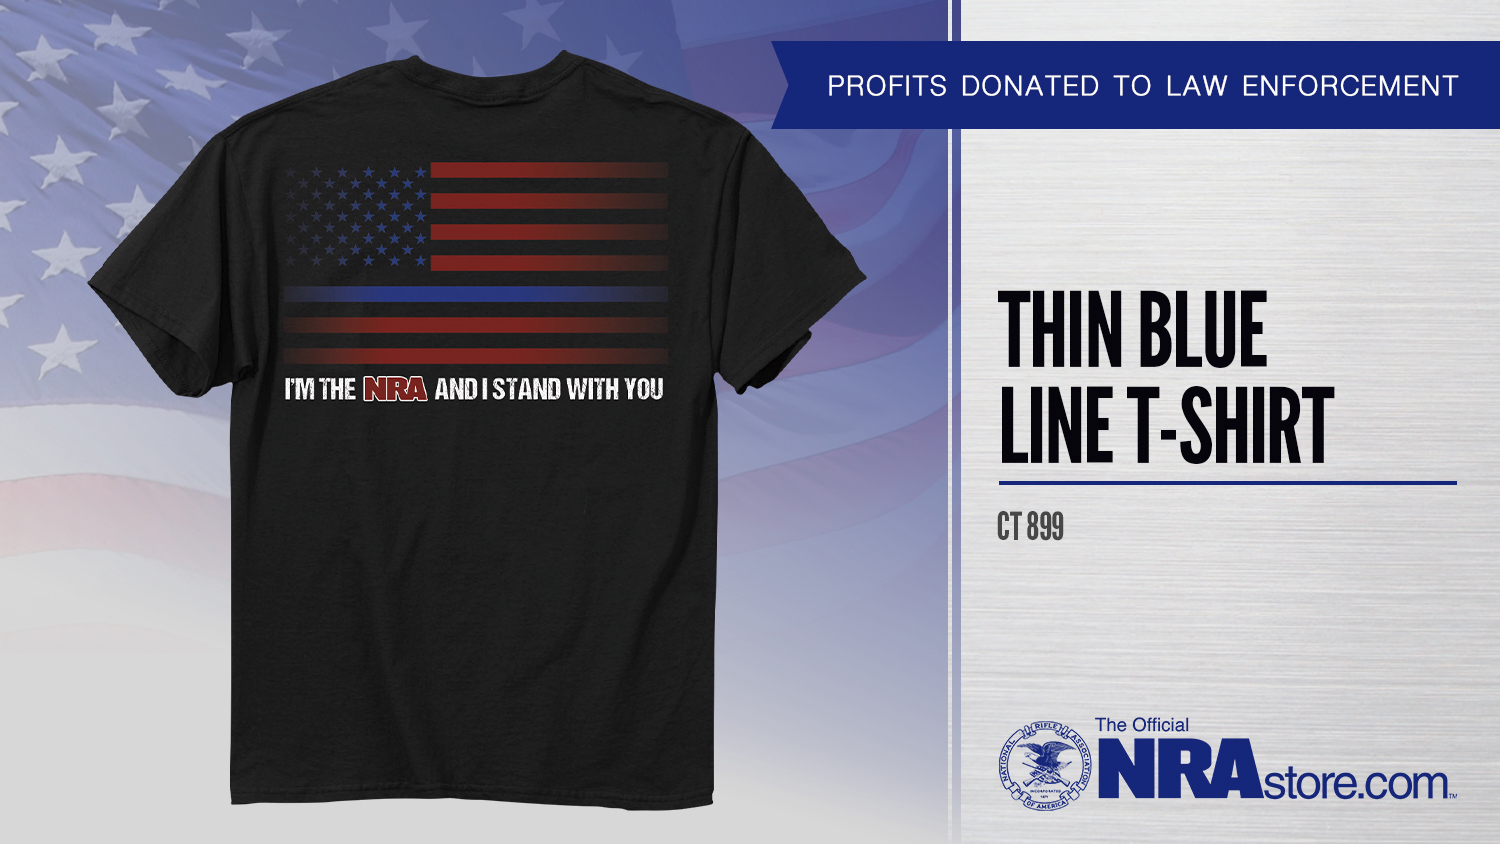 NRA Store Product Highlight: Thin Blue Line T-Shirt